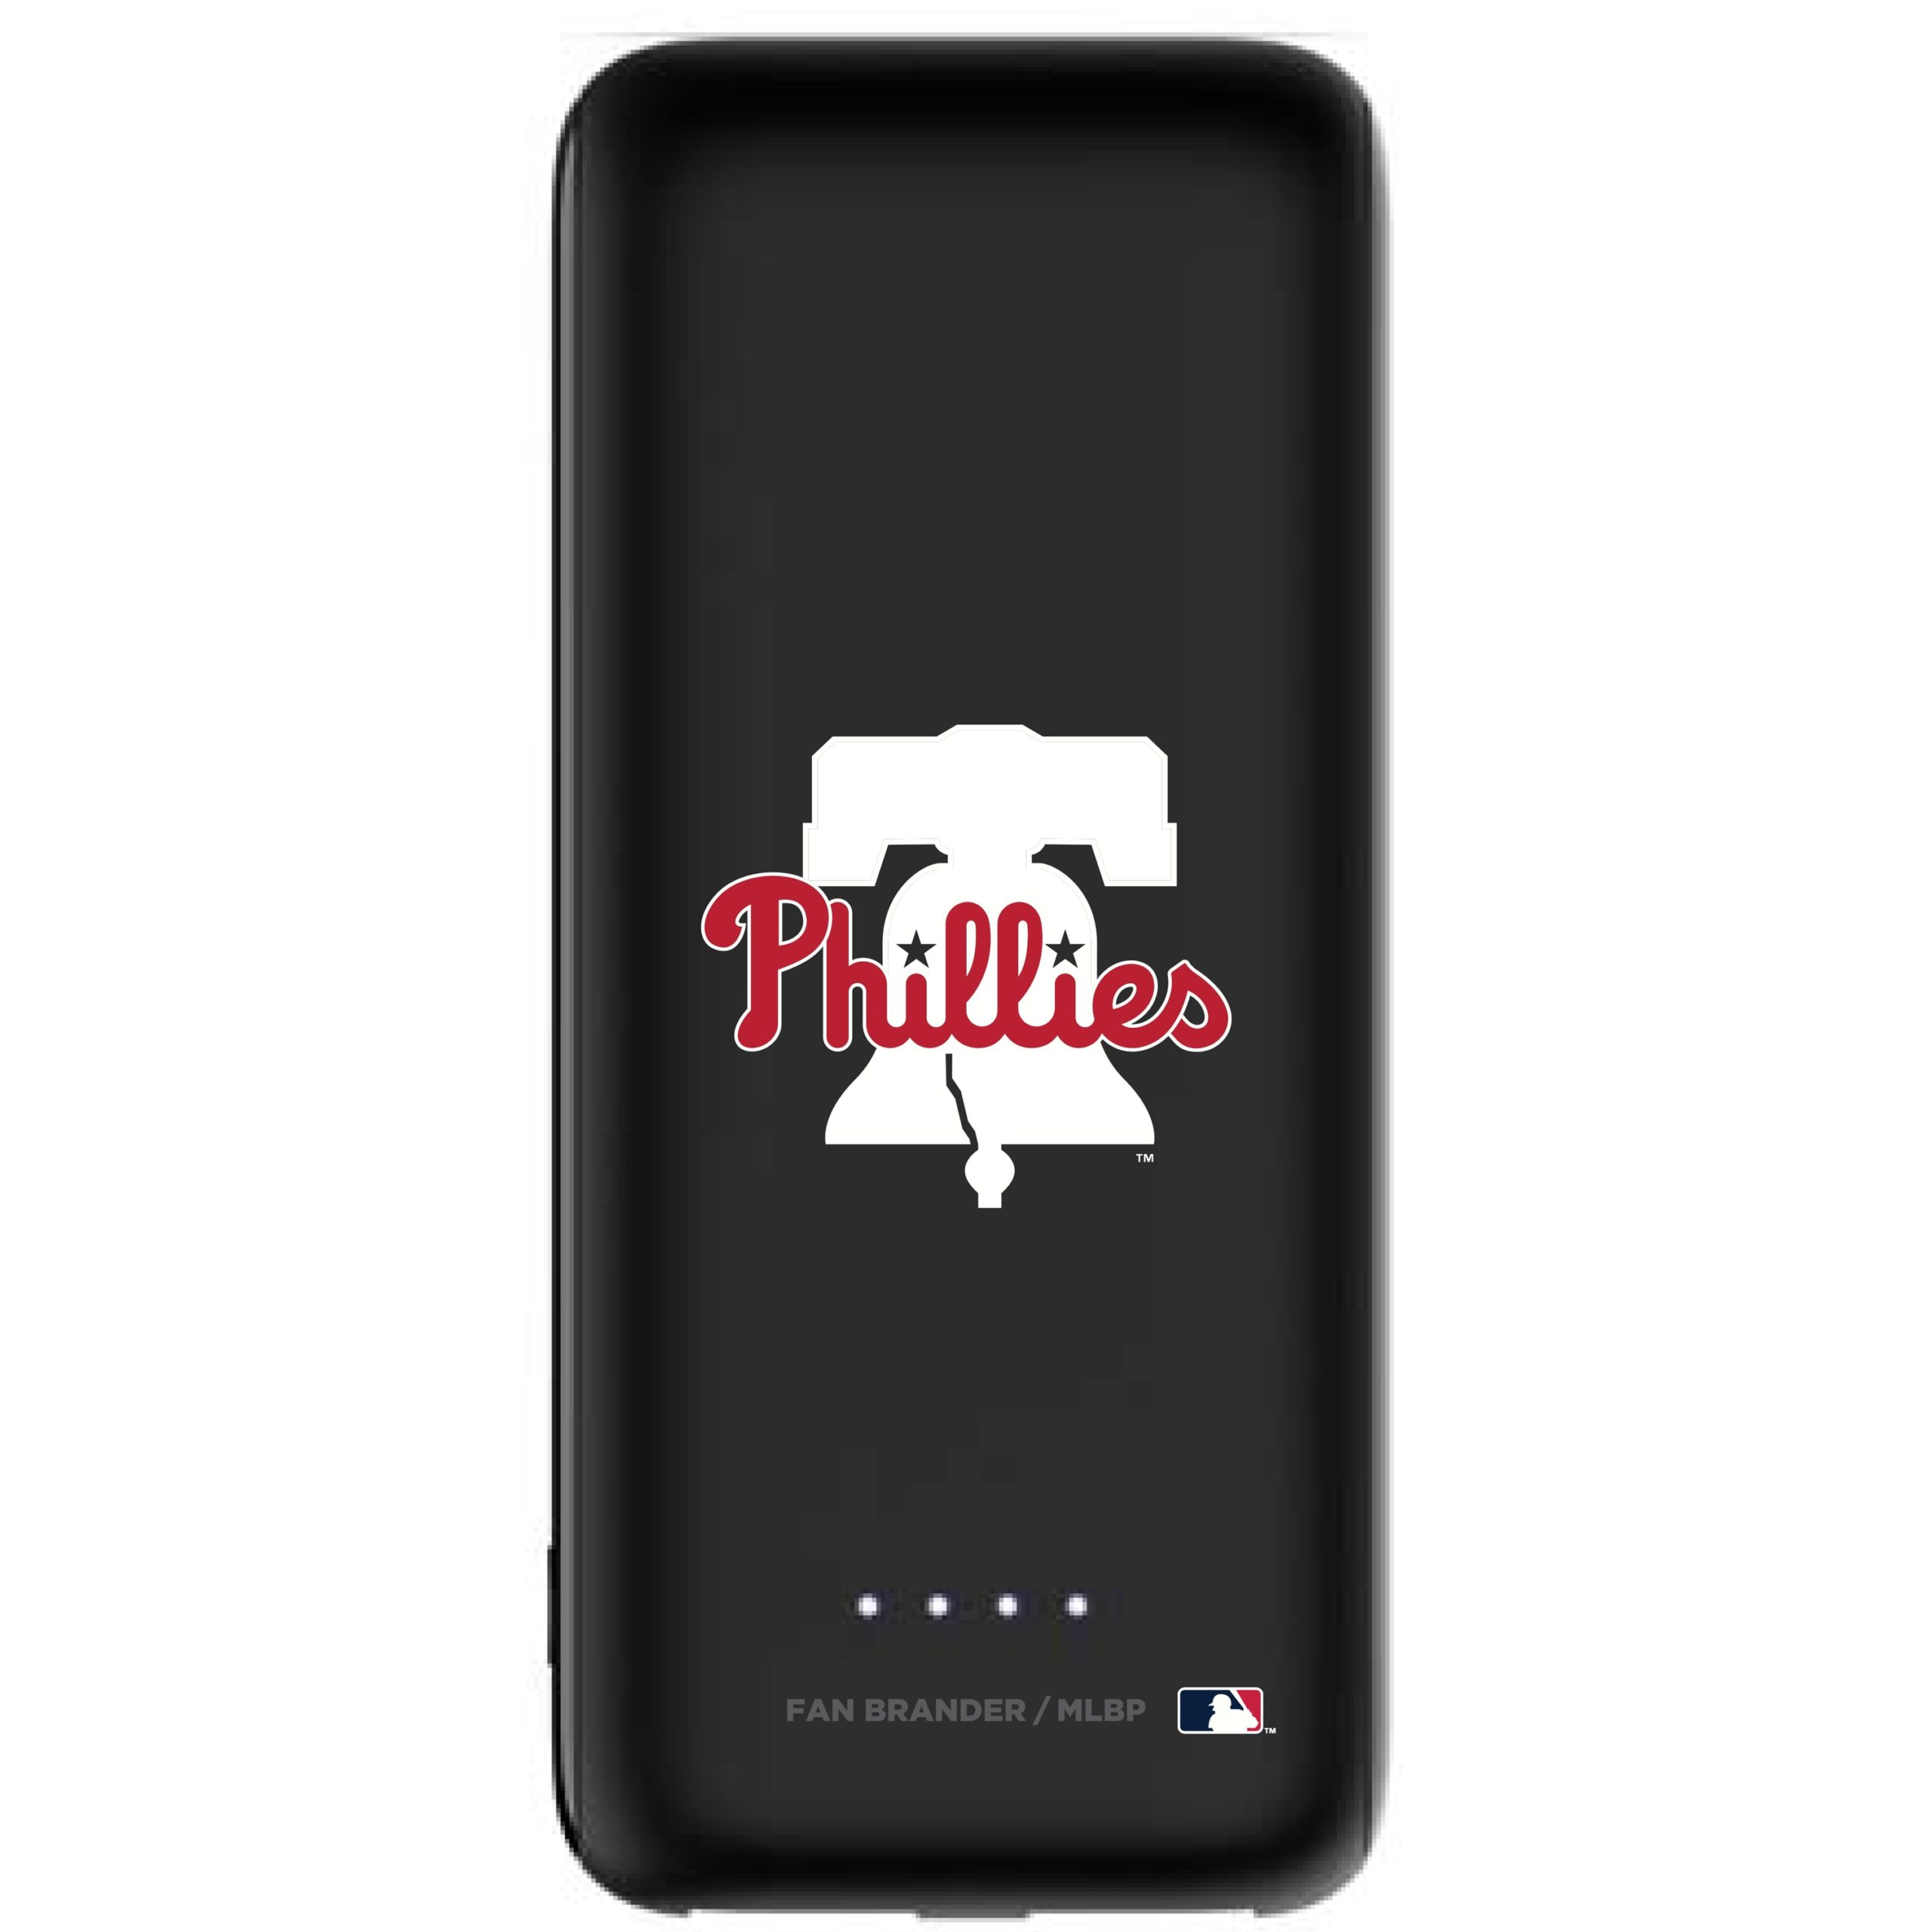 Philadelphia Phillies mophie 5200 mAh Universal Battery Power Boost